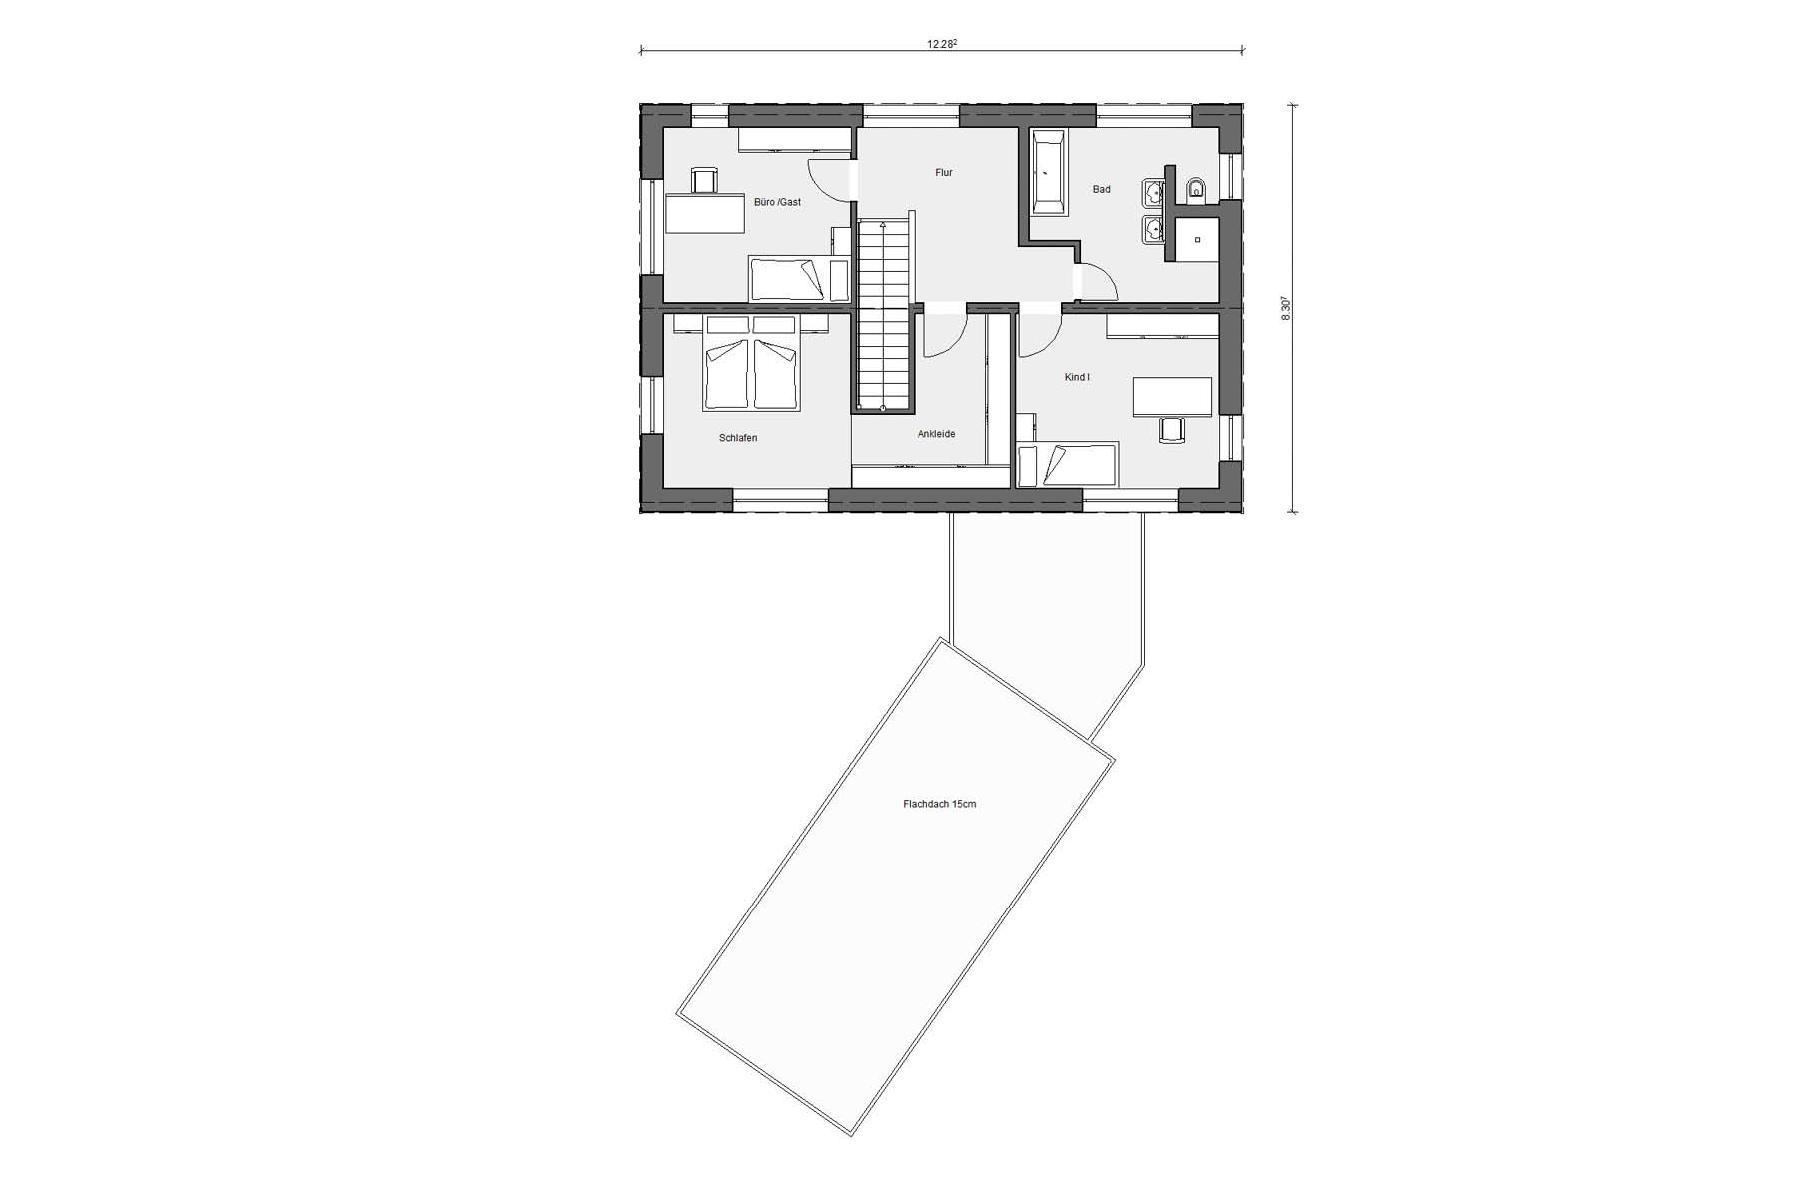 Floor plan attic E 20-161.2 Energy efficiency house